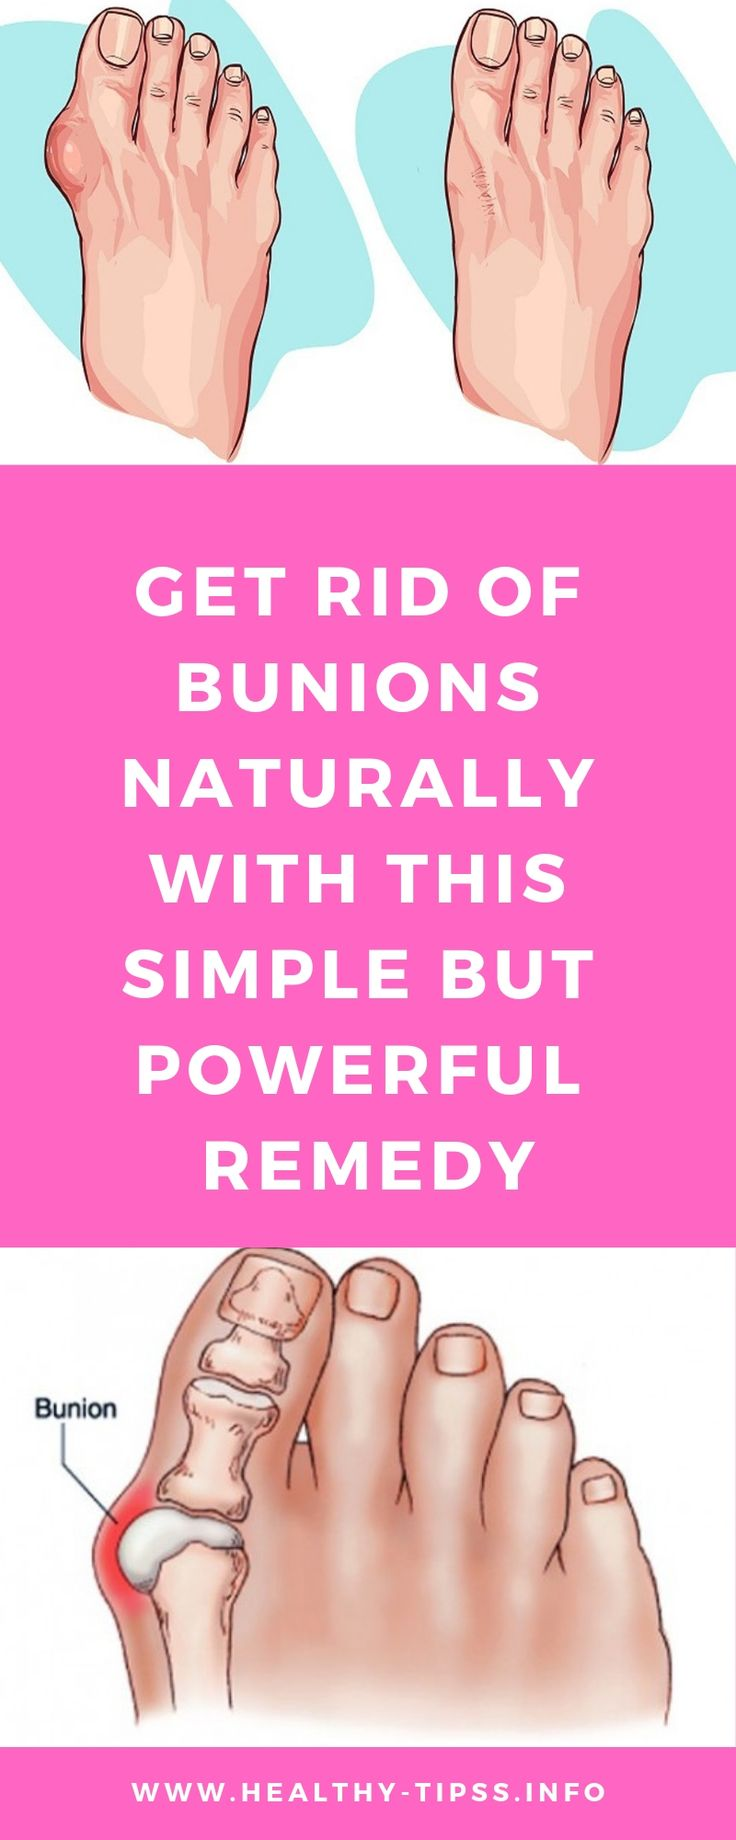 Get rid of bunions naturally with this simple but powerful